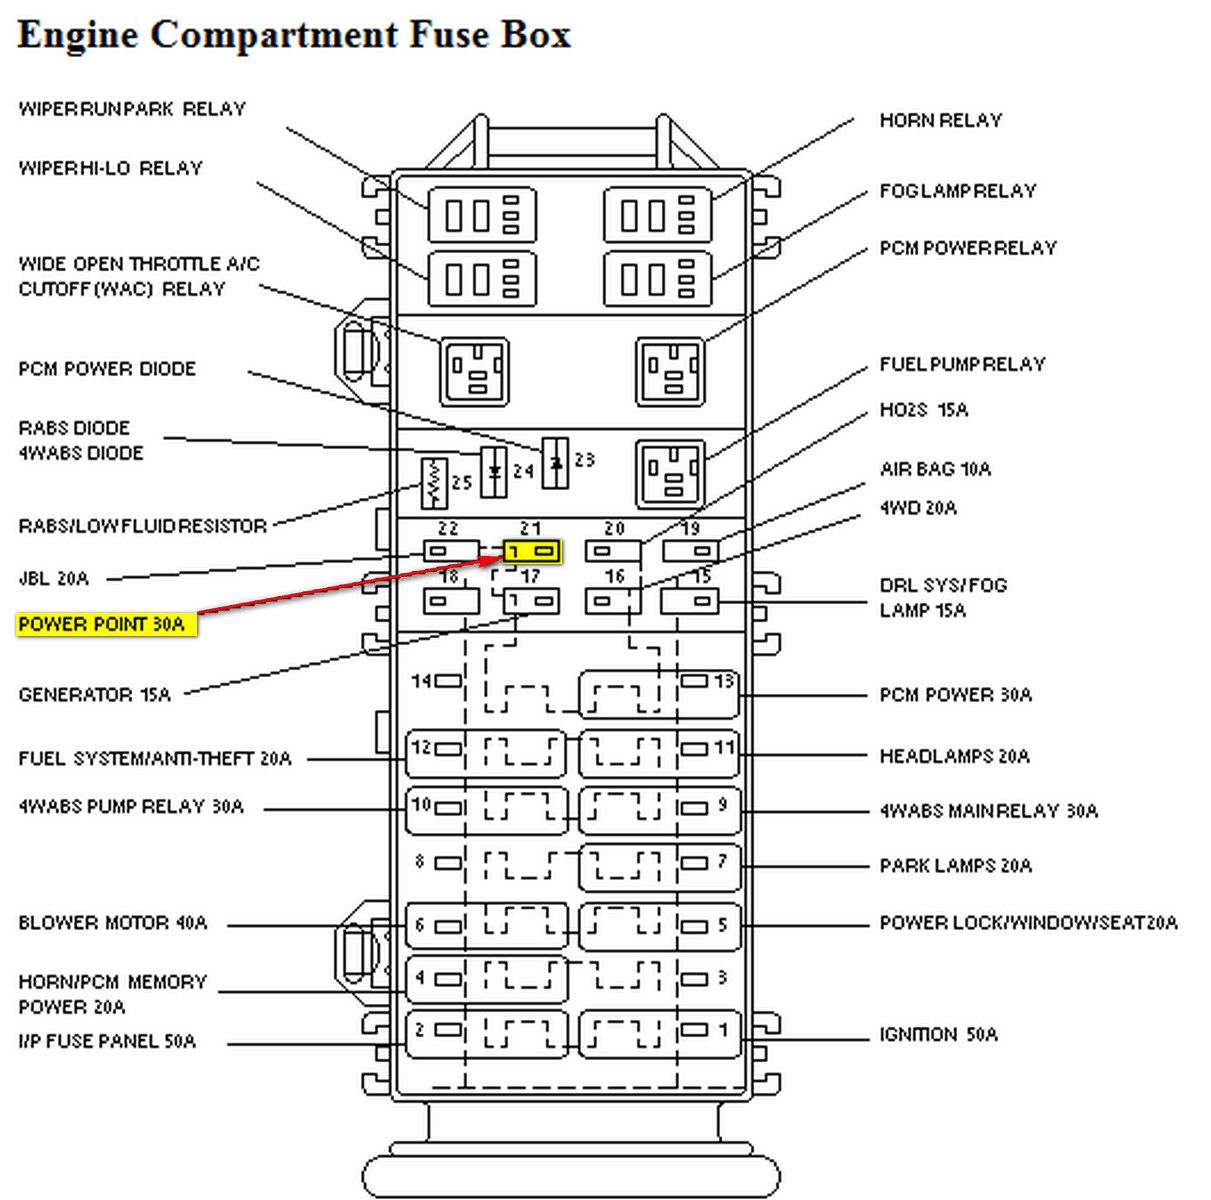 8a55967da7ae1bd251b795845886bd24 2002 ford ranger fuse diagram 1997 ford ranger fuse box diagram 2012 ford edge fuse box diagram at cos-gaming.co